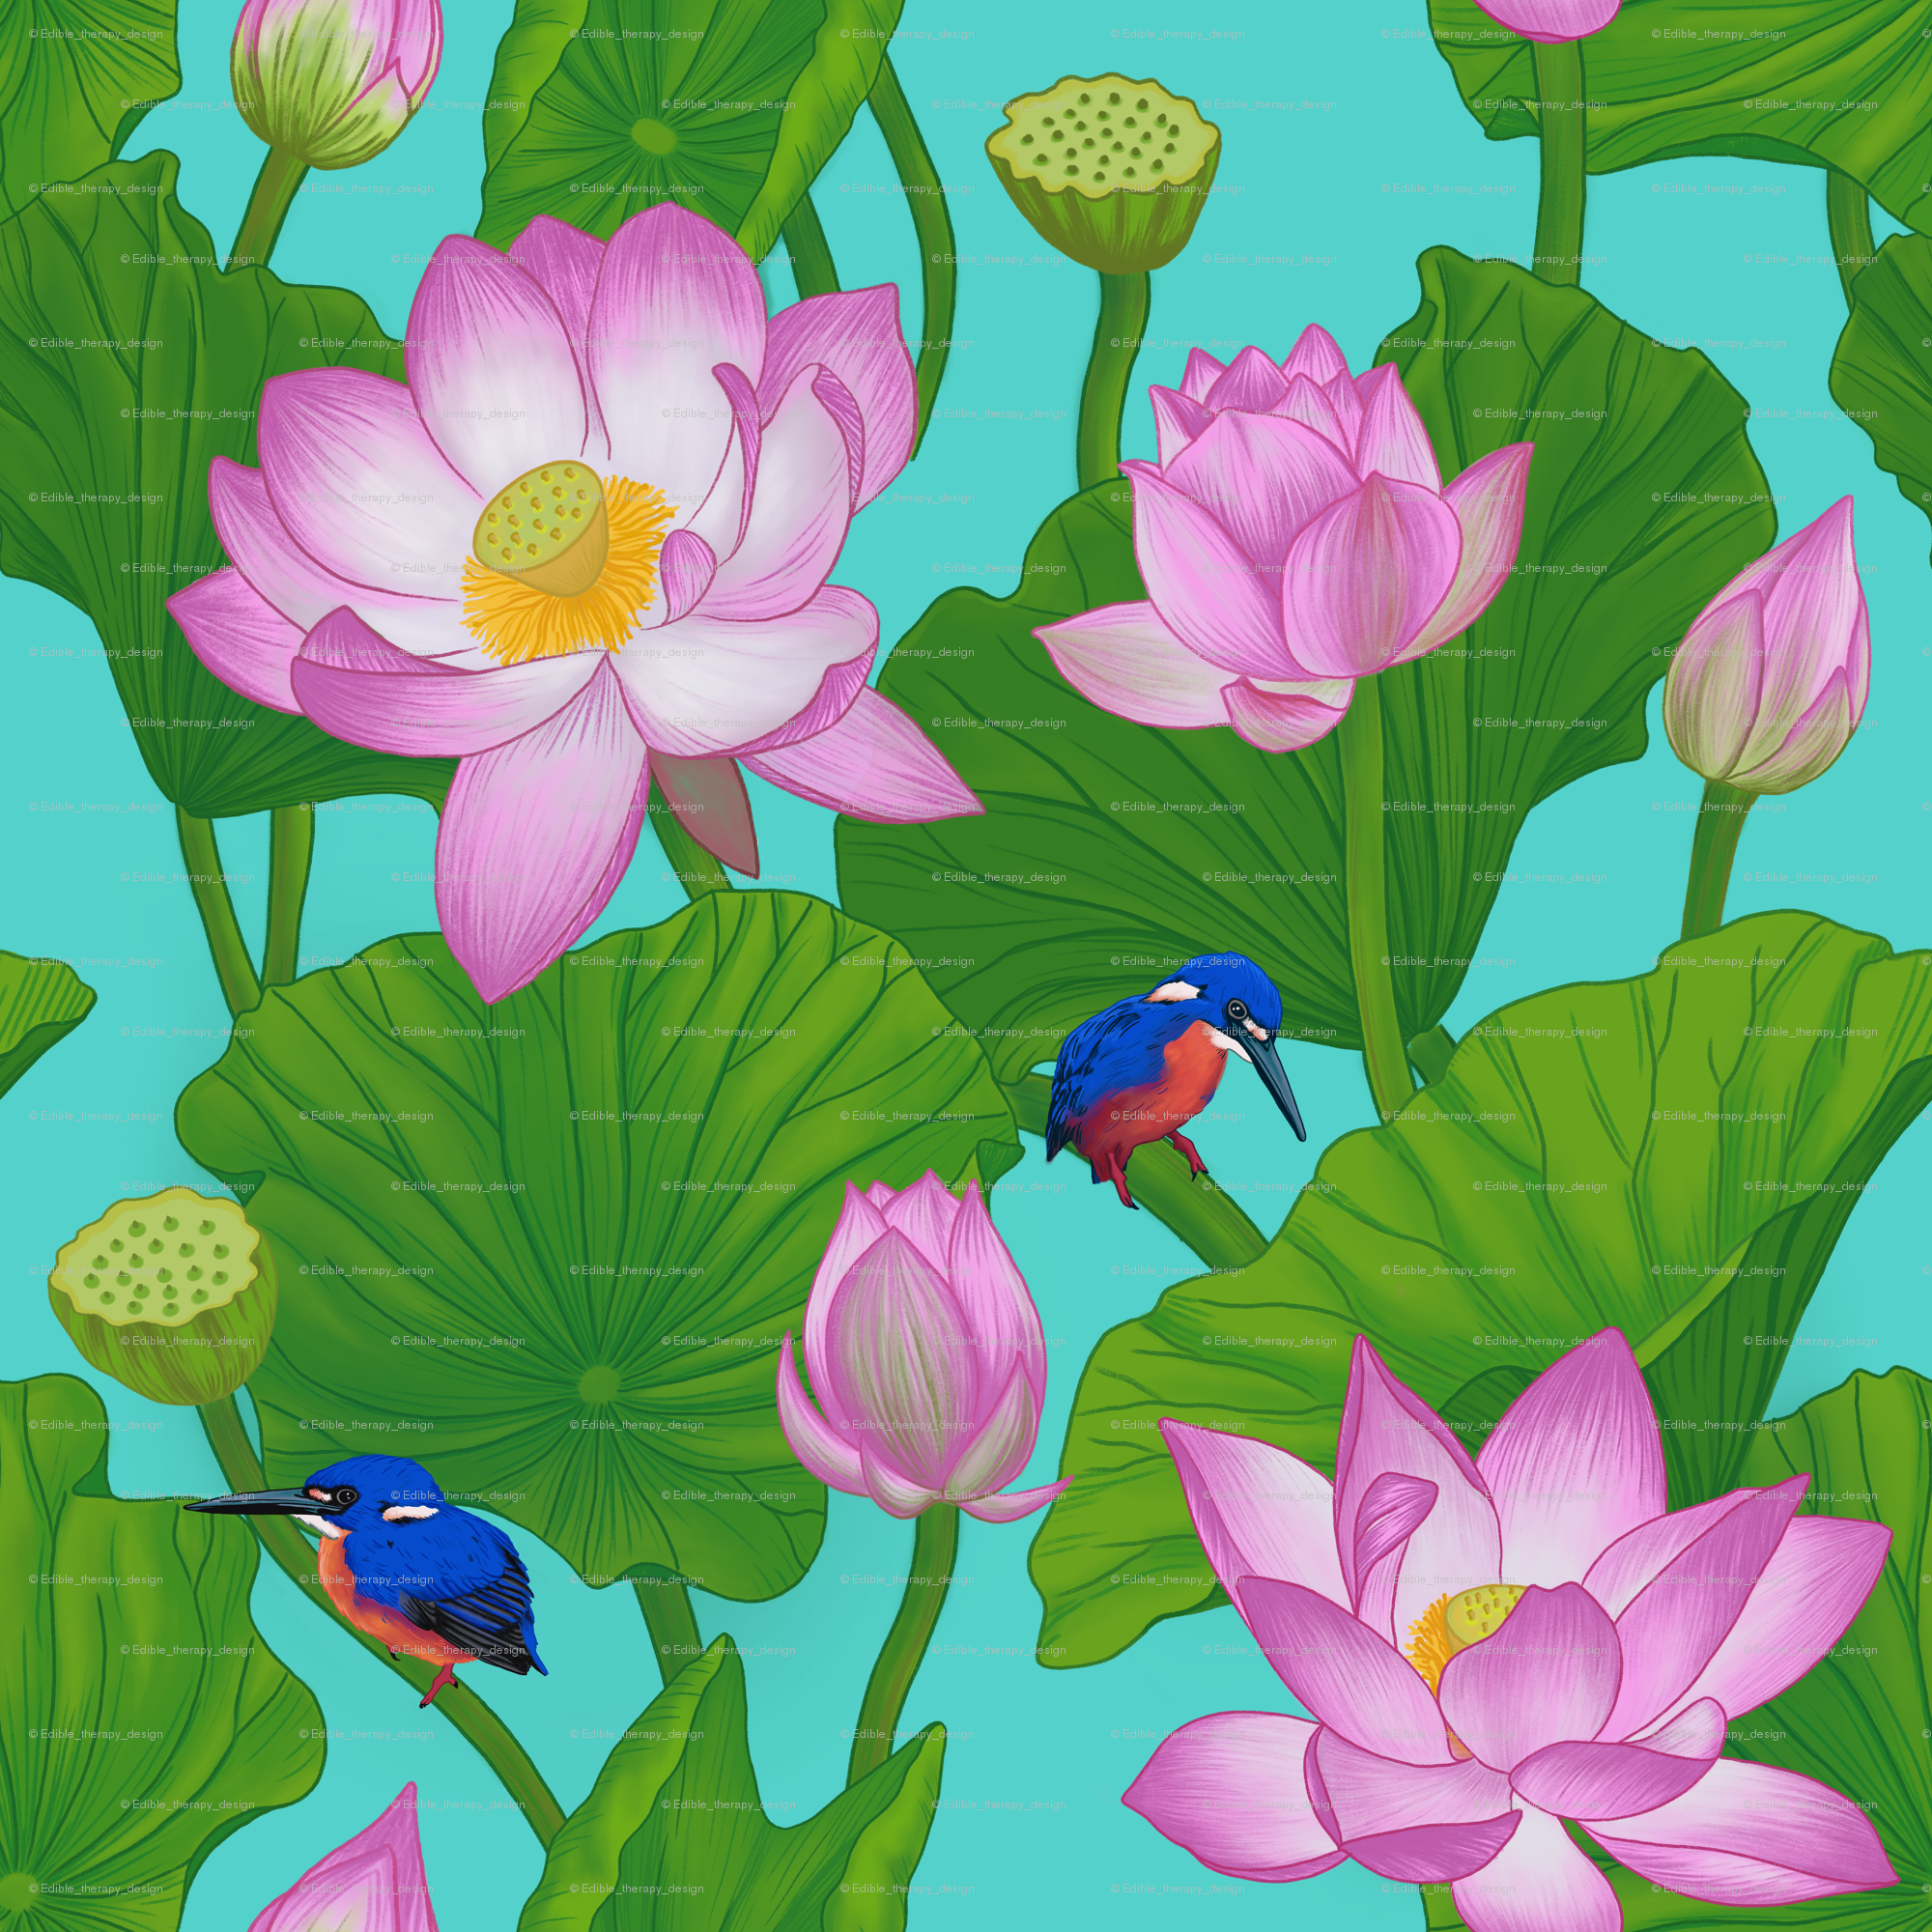 Asian Pink Lotus Flowers Amongst Lily Pads Wallpaper